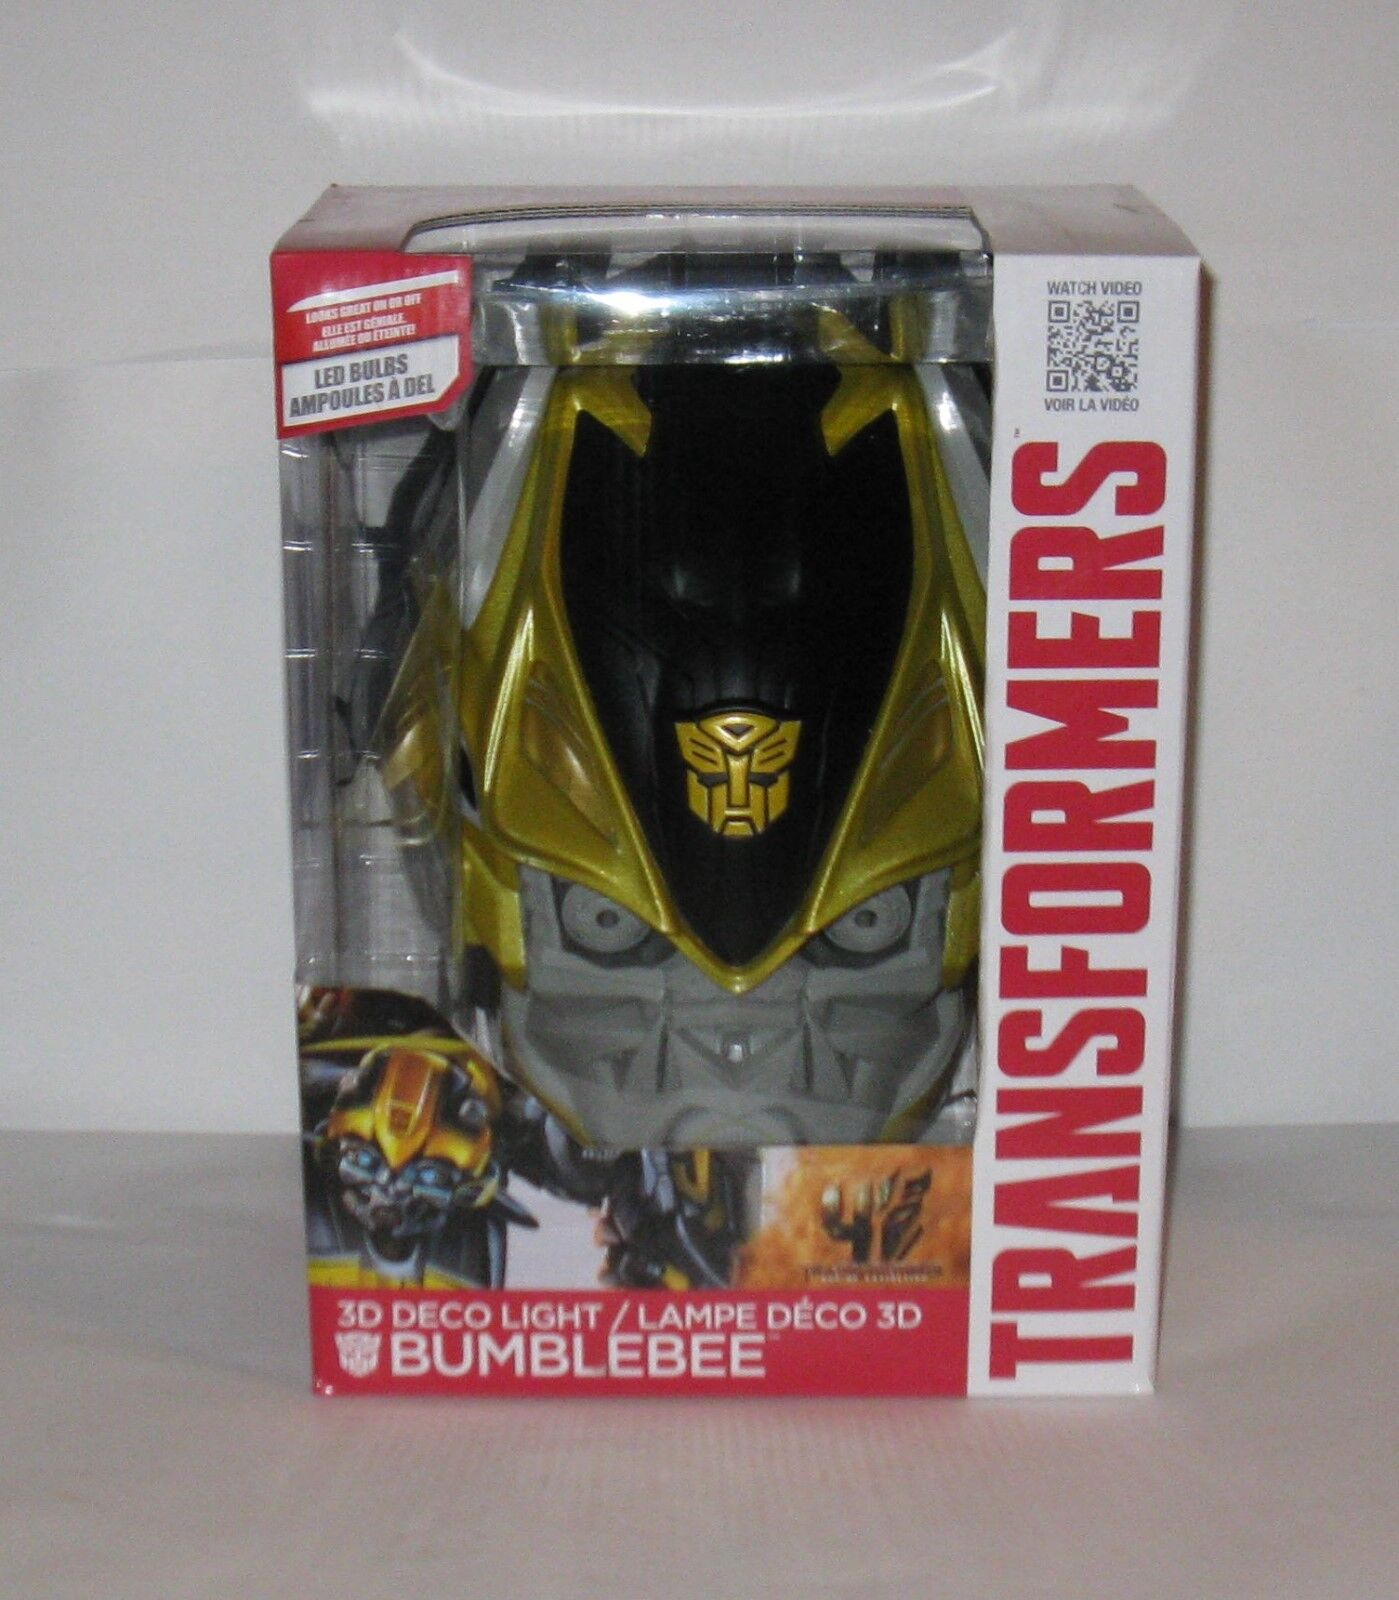 Transformers Bumblebee 3D Deco Light MB  FREE SHIPPING